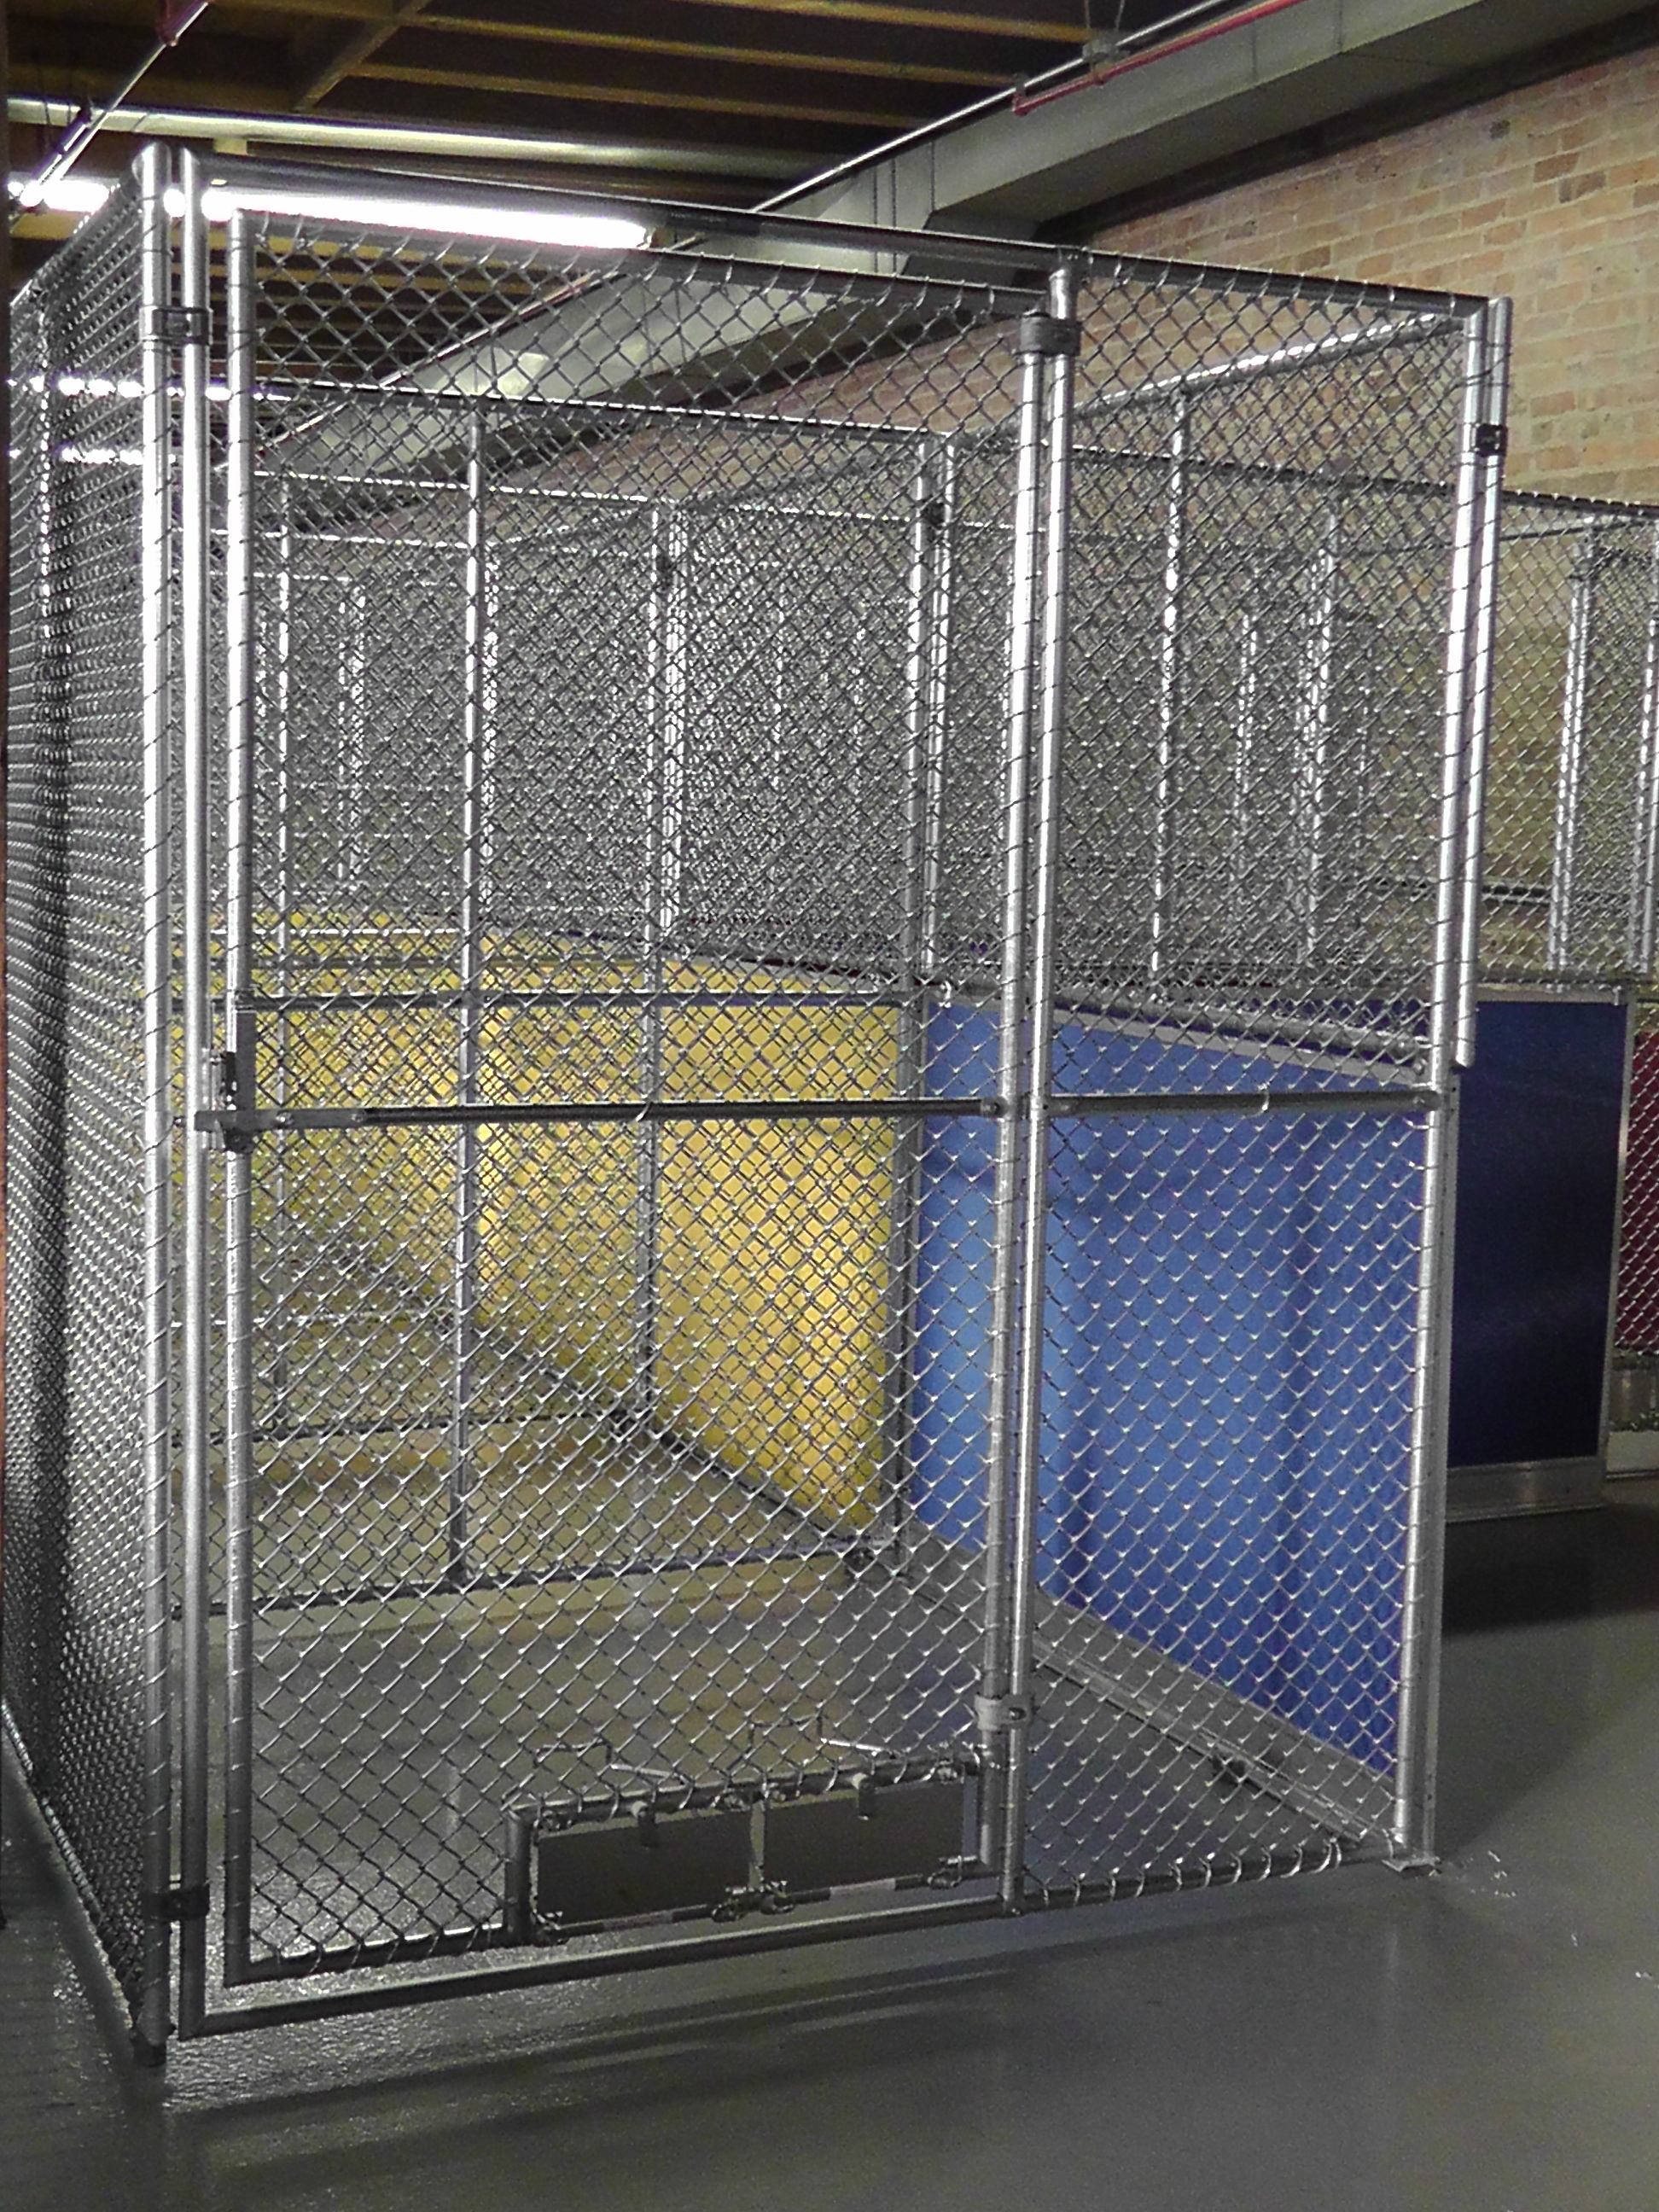 Inspirational Home Depot Dog Fence Kennels Insured By Ross